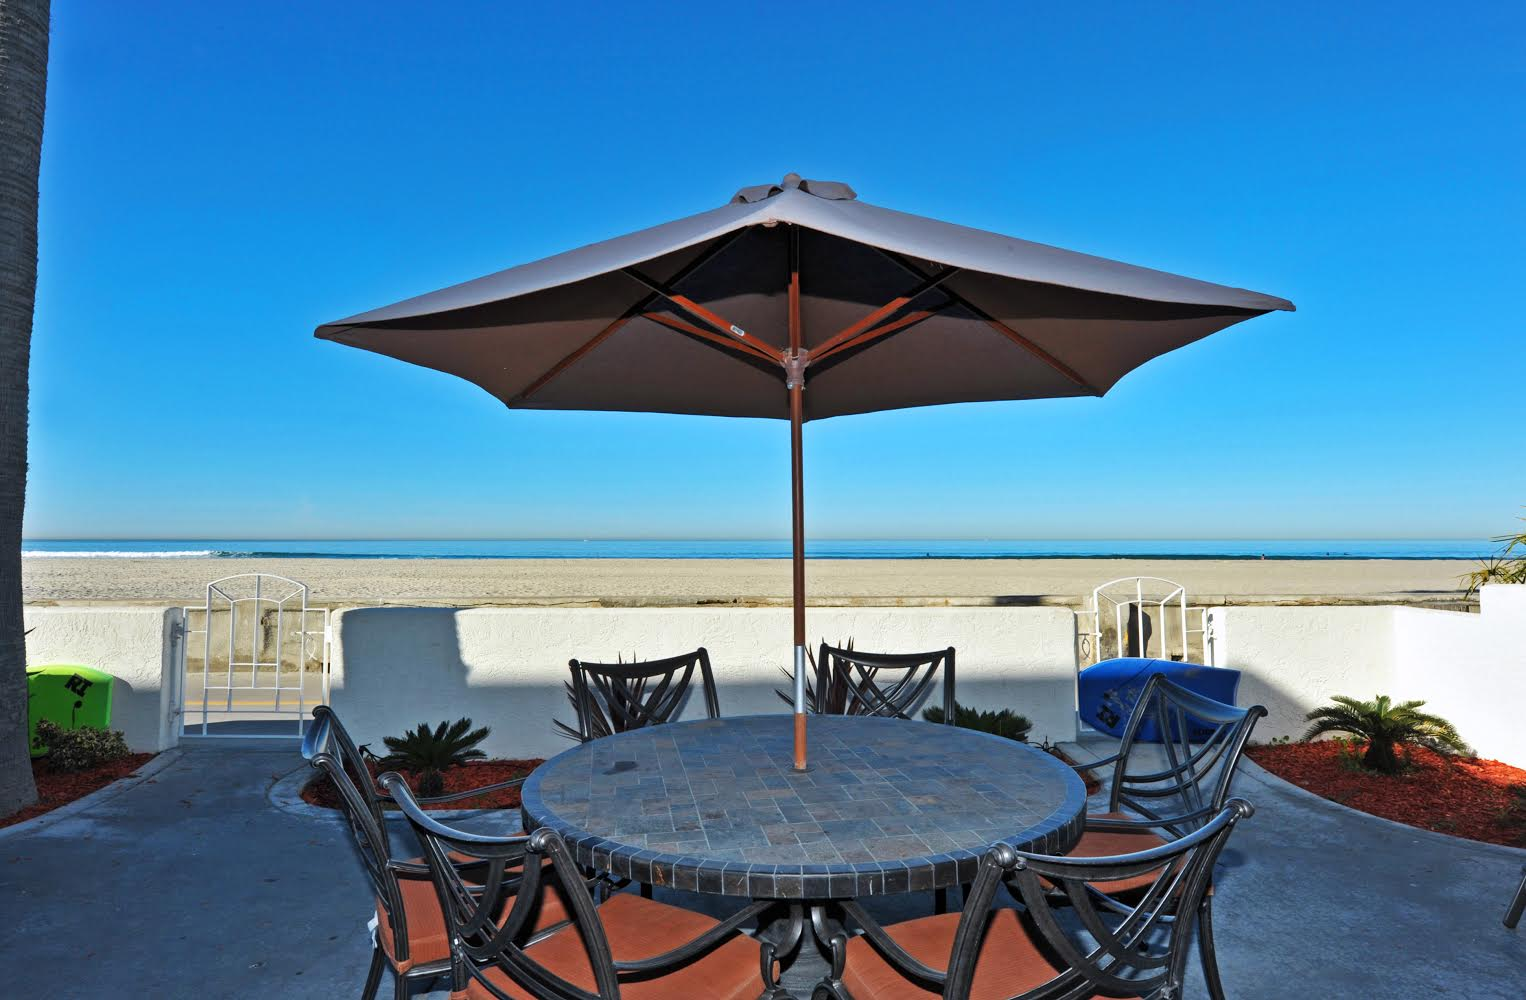 san diego vacation rentals, mission beach house vacation rentals